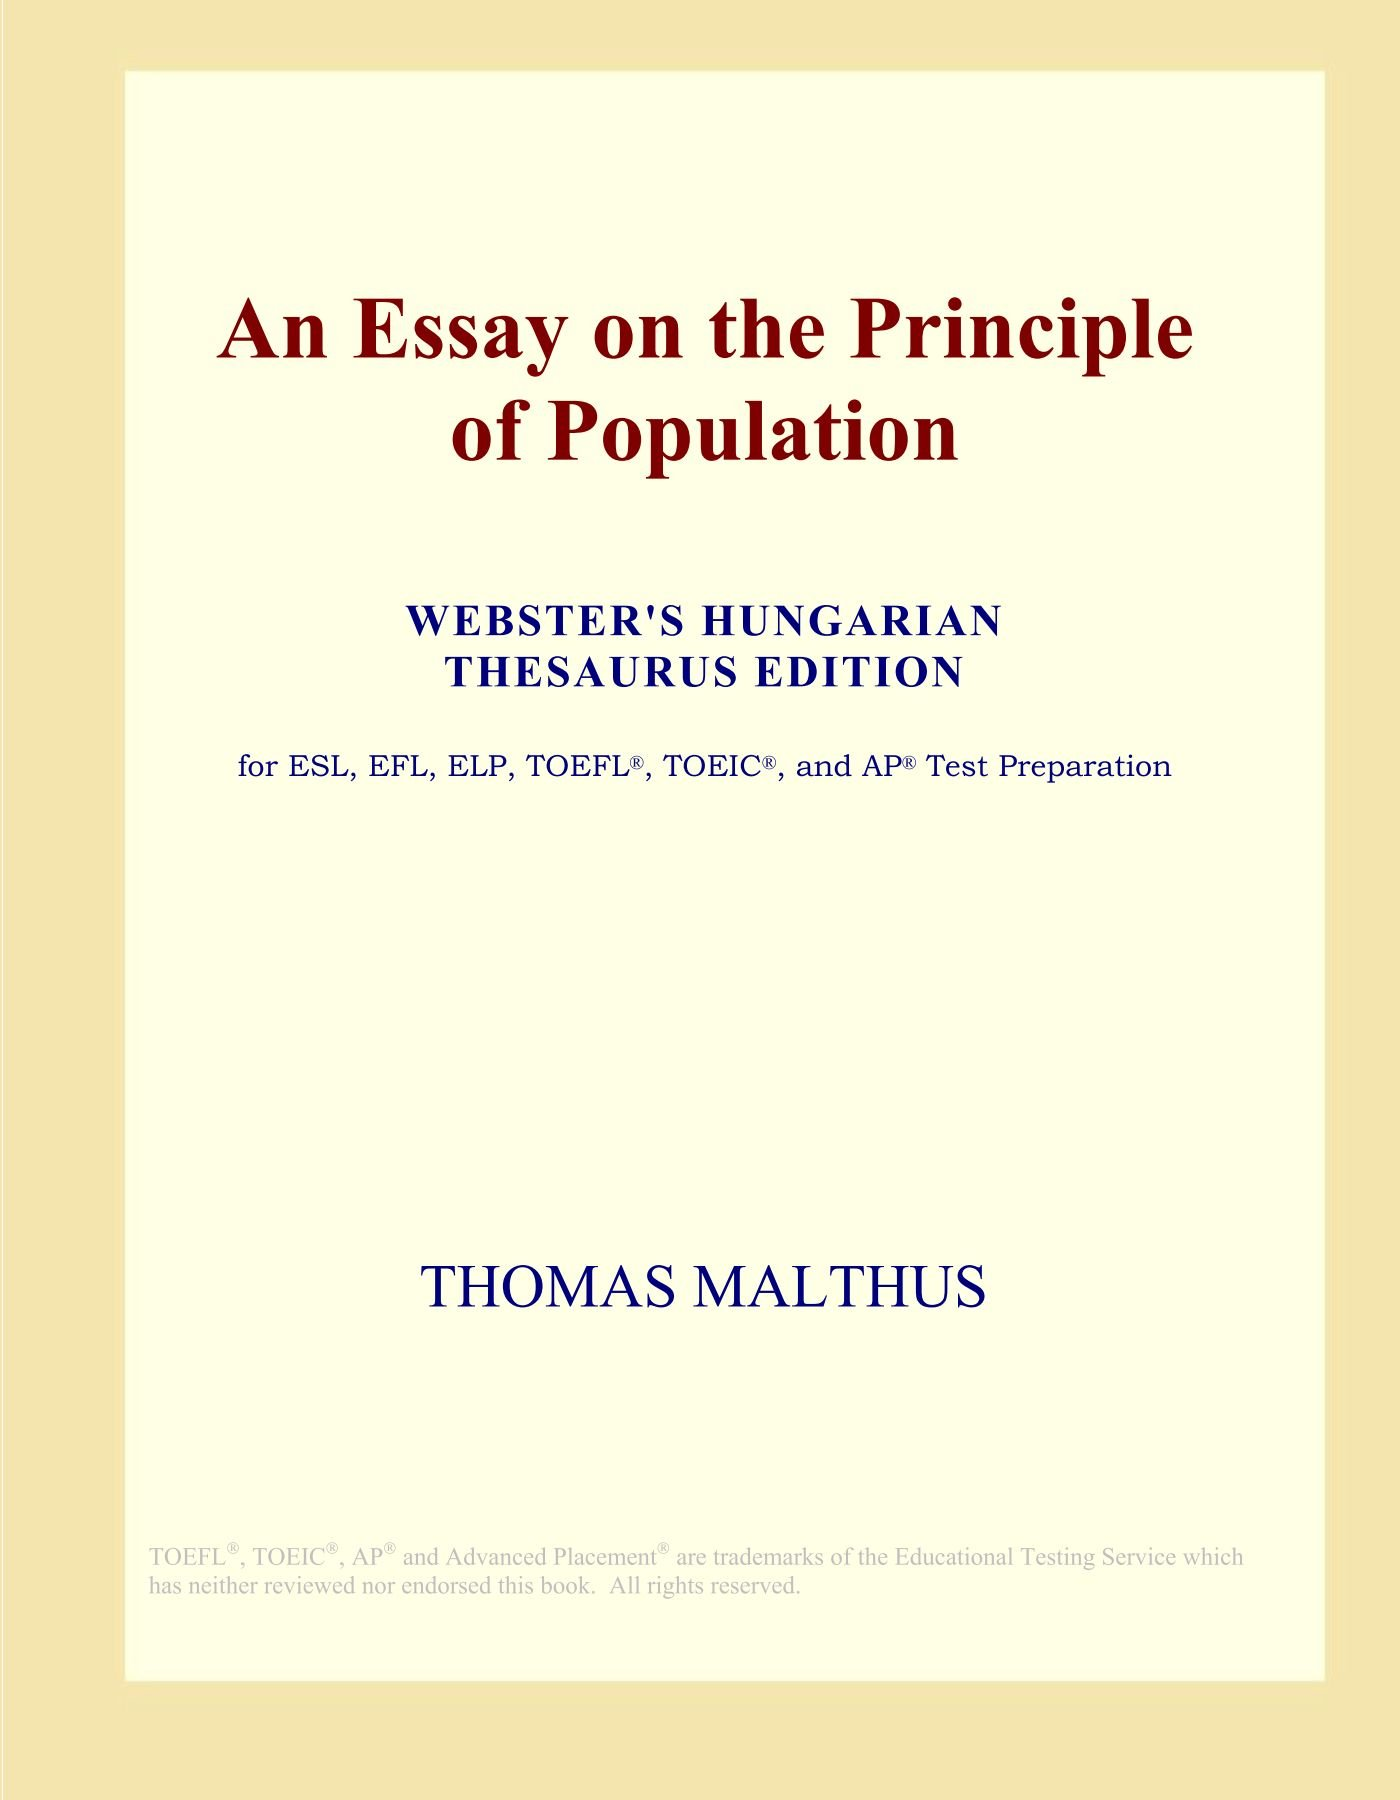 an essay on the principle of population websters hungarian  an essay on the principle of population websters hungarian thesaurus  edition paperback  october